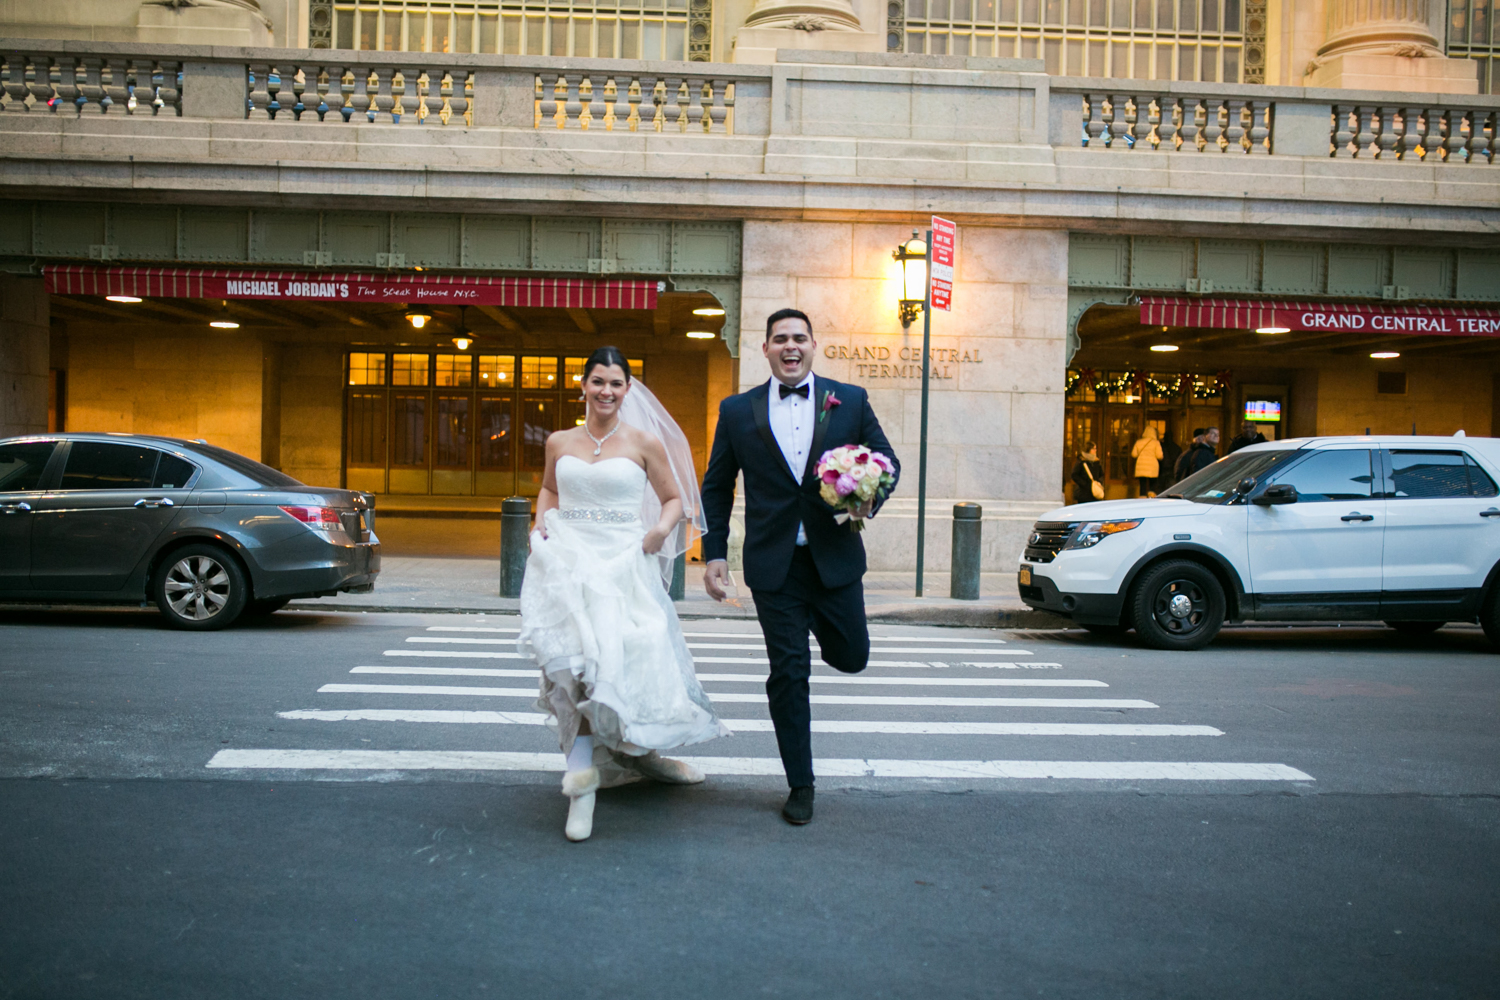 Bride and groom running in front of grand central terminal